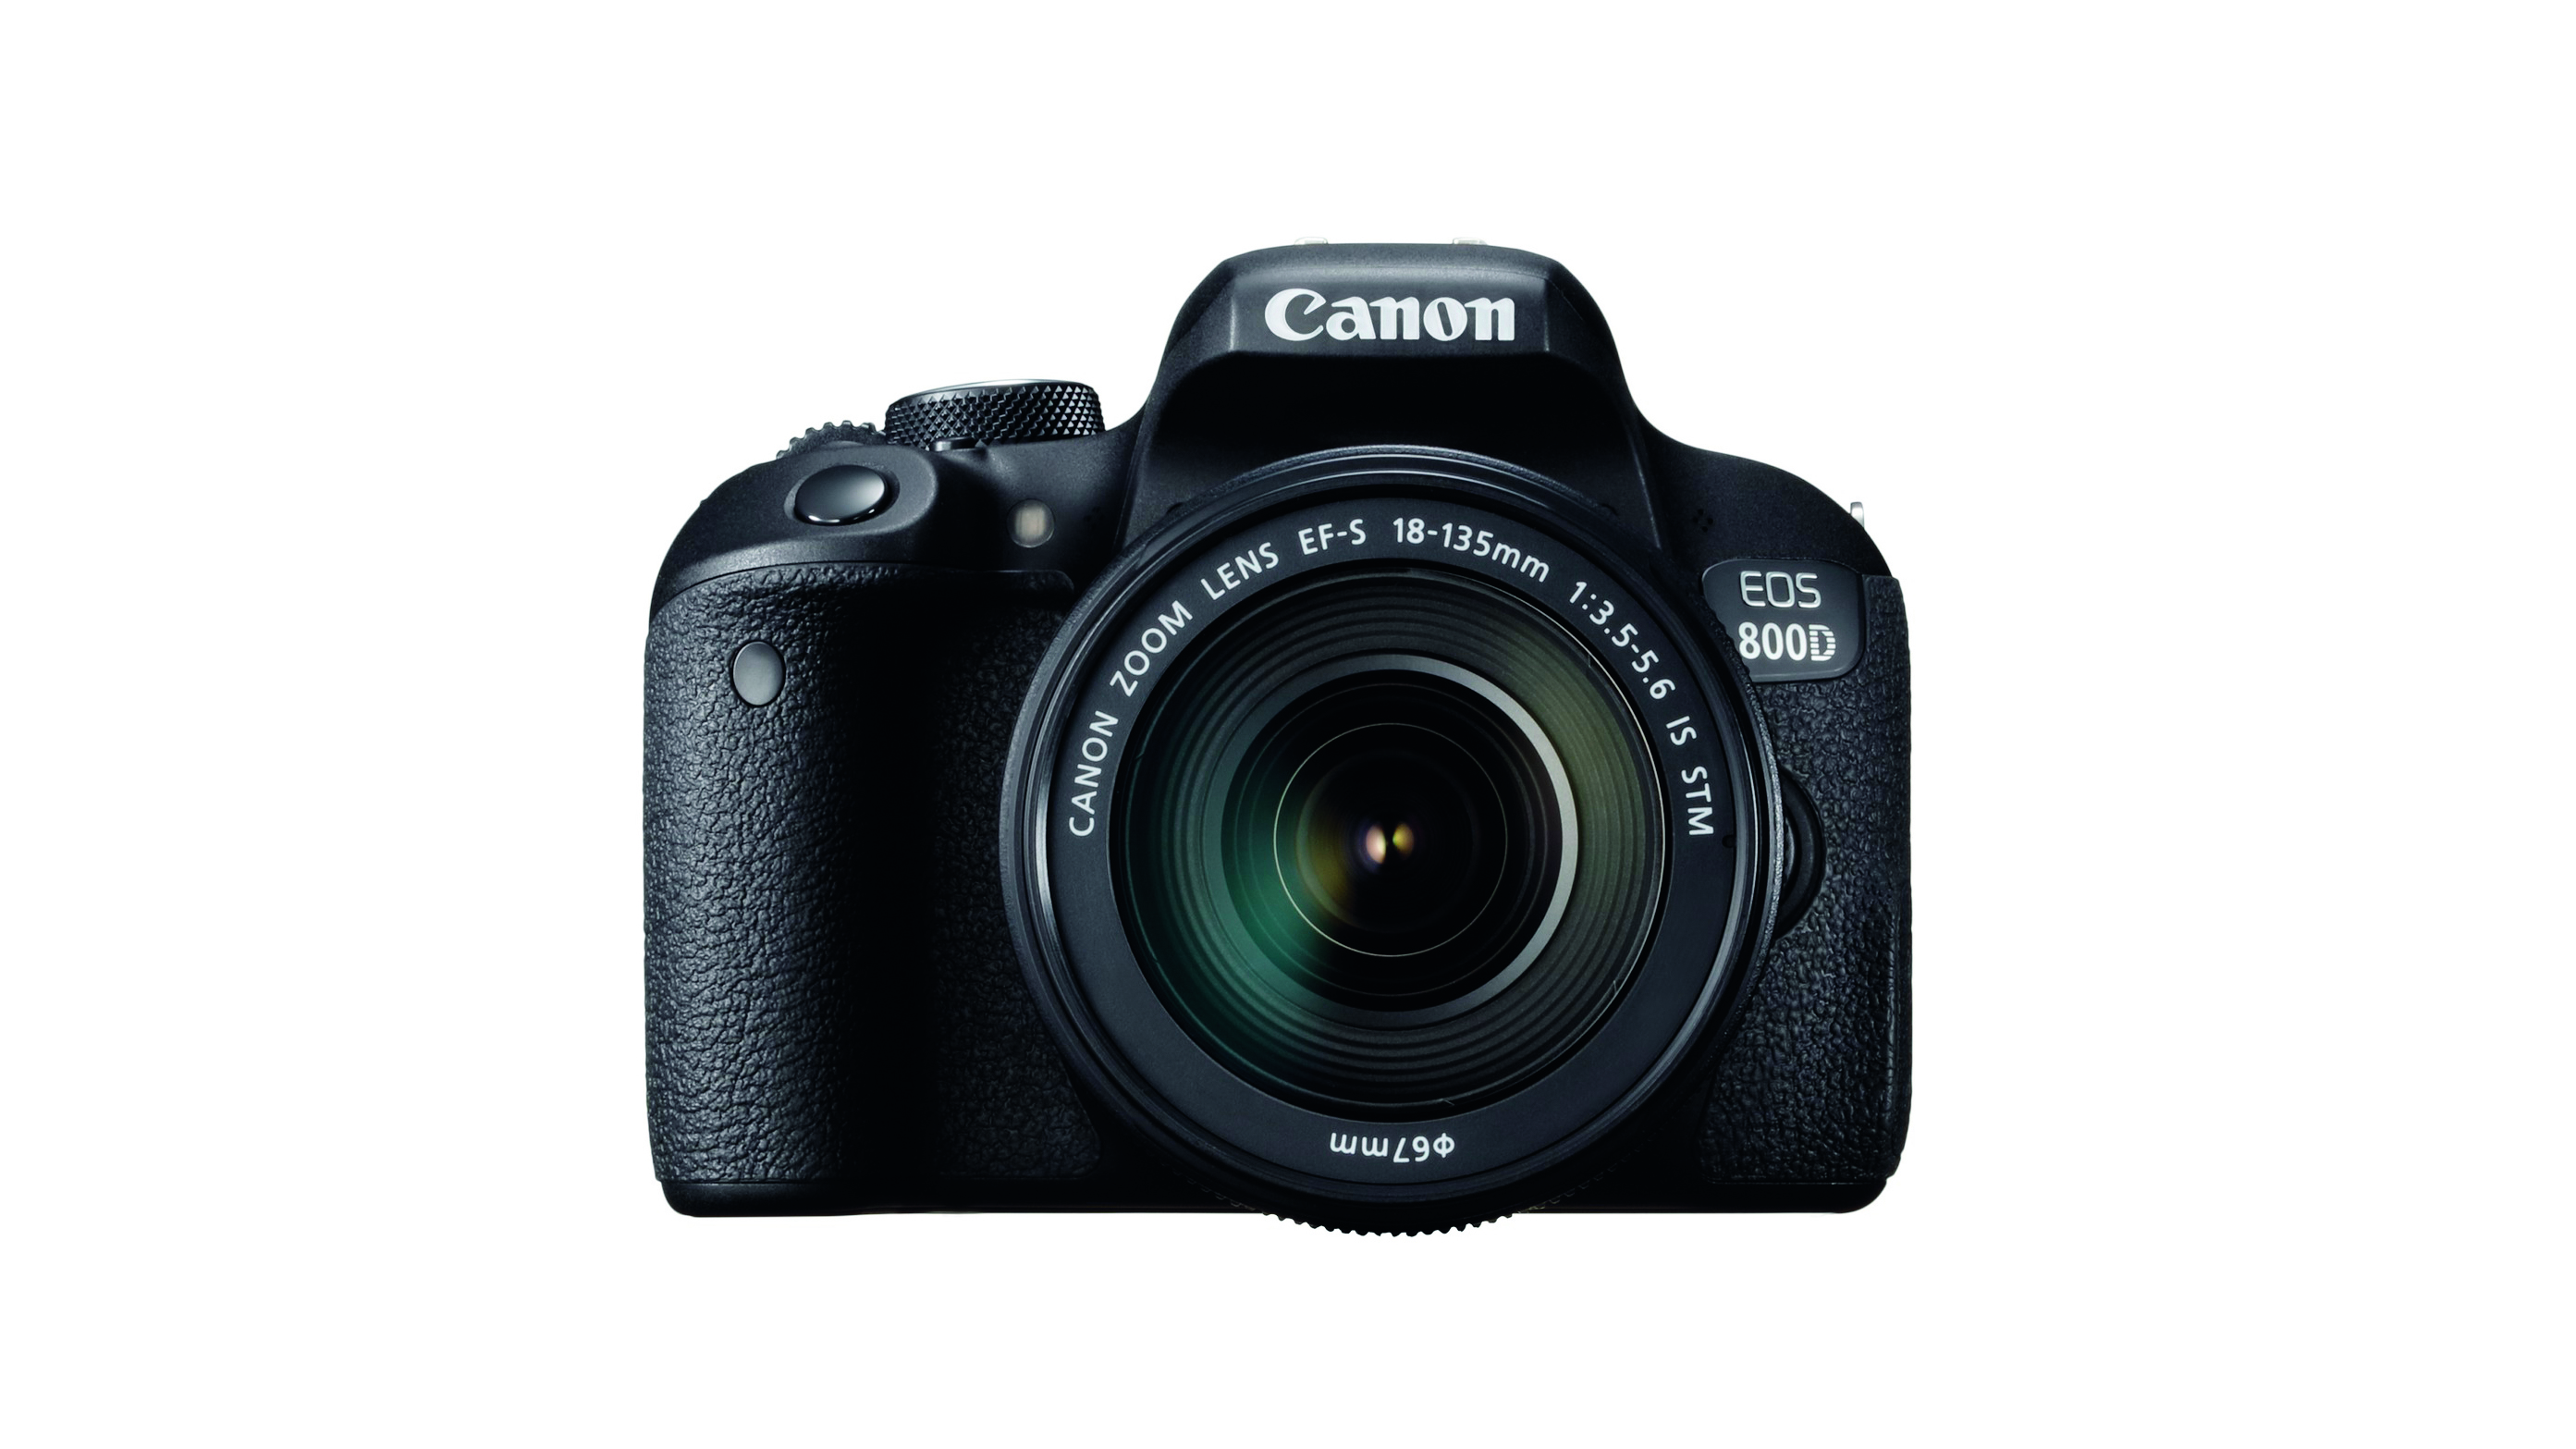 Canon Eos Rebel T7i Eos 800d Review Specs And Lab Tests Digital